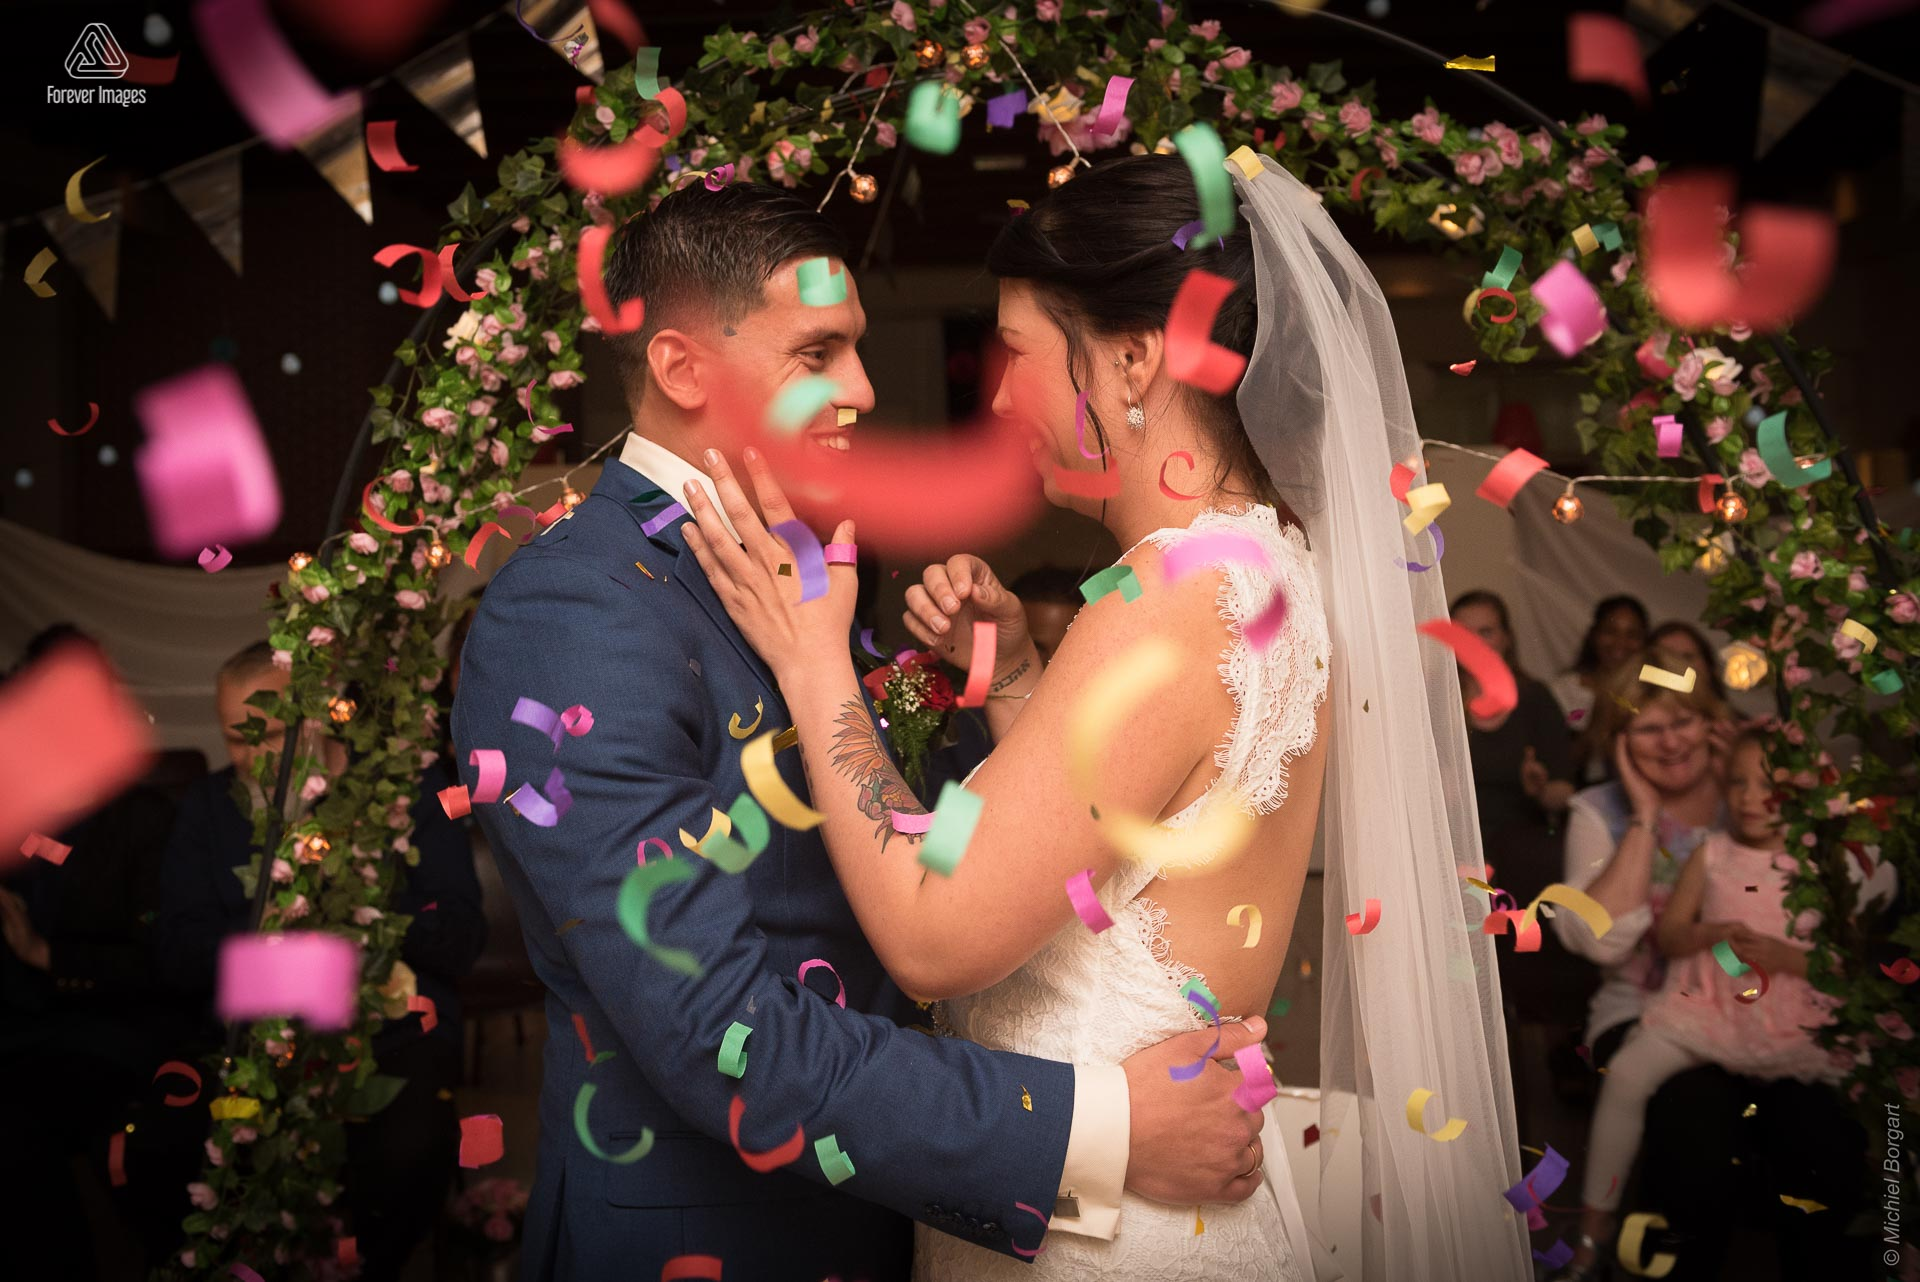 Bridal photo wedding couple immediately after the kiss with confetti | Kevin Leonie | Wedding Photographer Michiel Borgart - Forever Images.